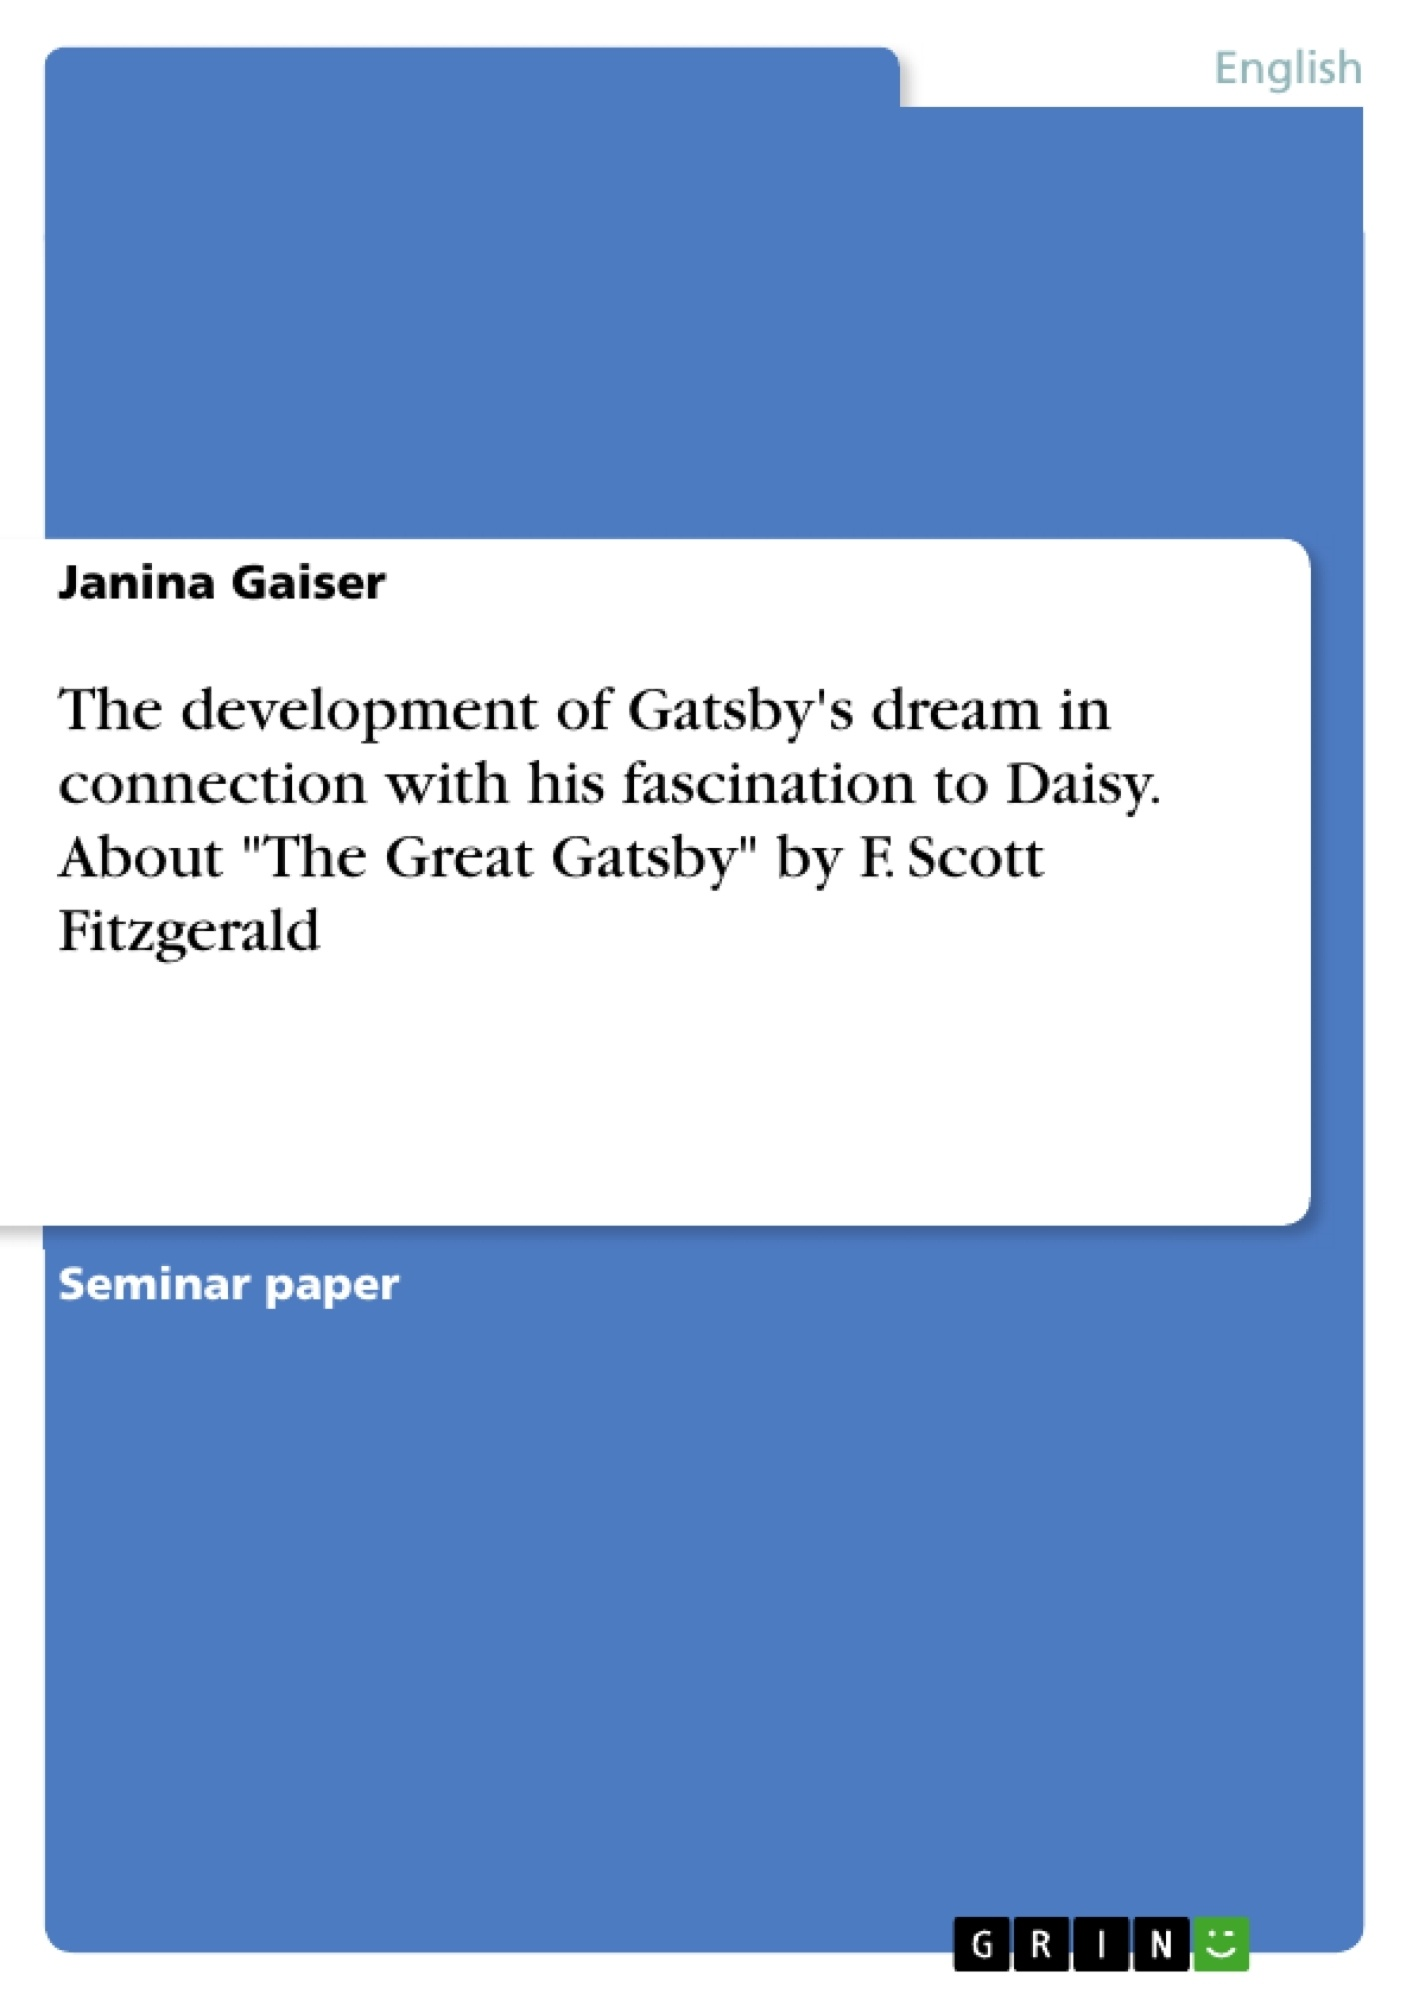 """Title: The development of Gatsby's dream in connection with his fascination to Daisy. About """"The Great Gatsby"""" by F. Scott Fitzgerald"""